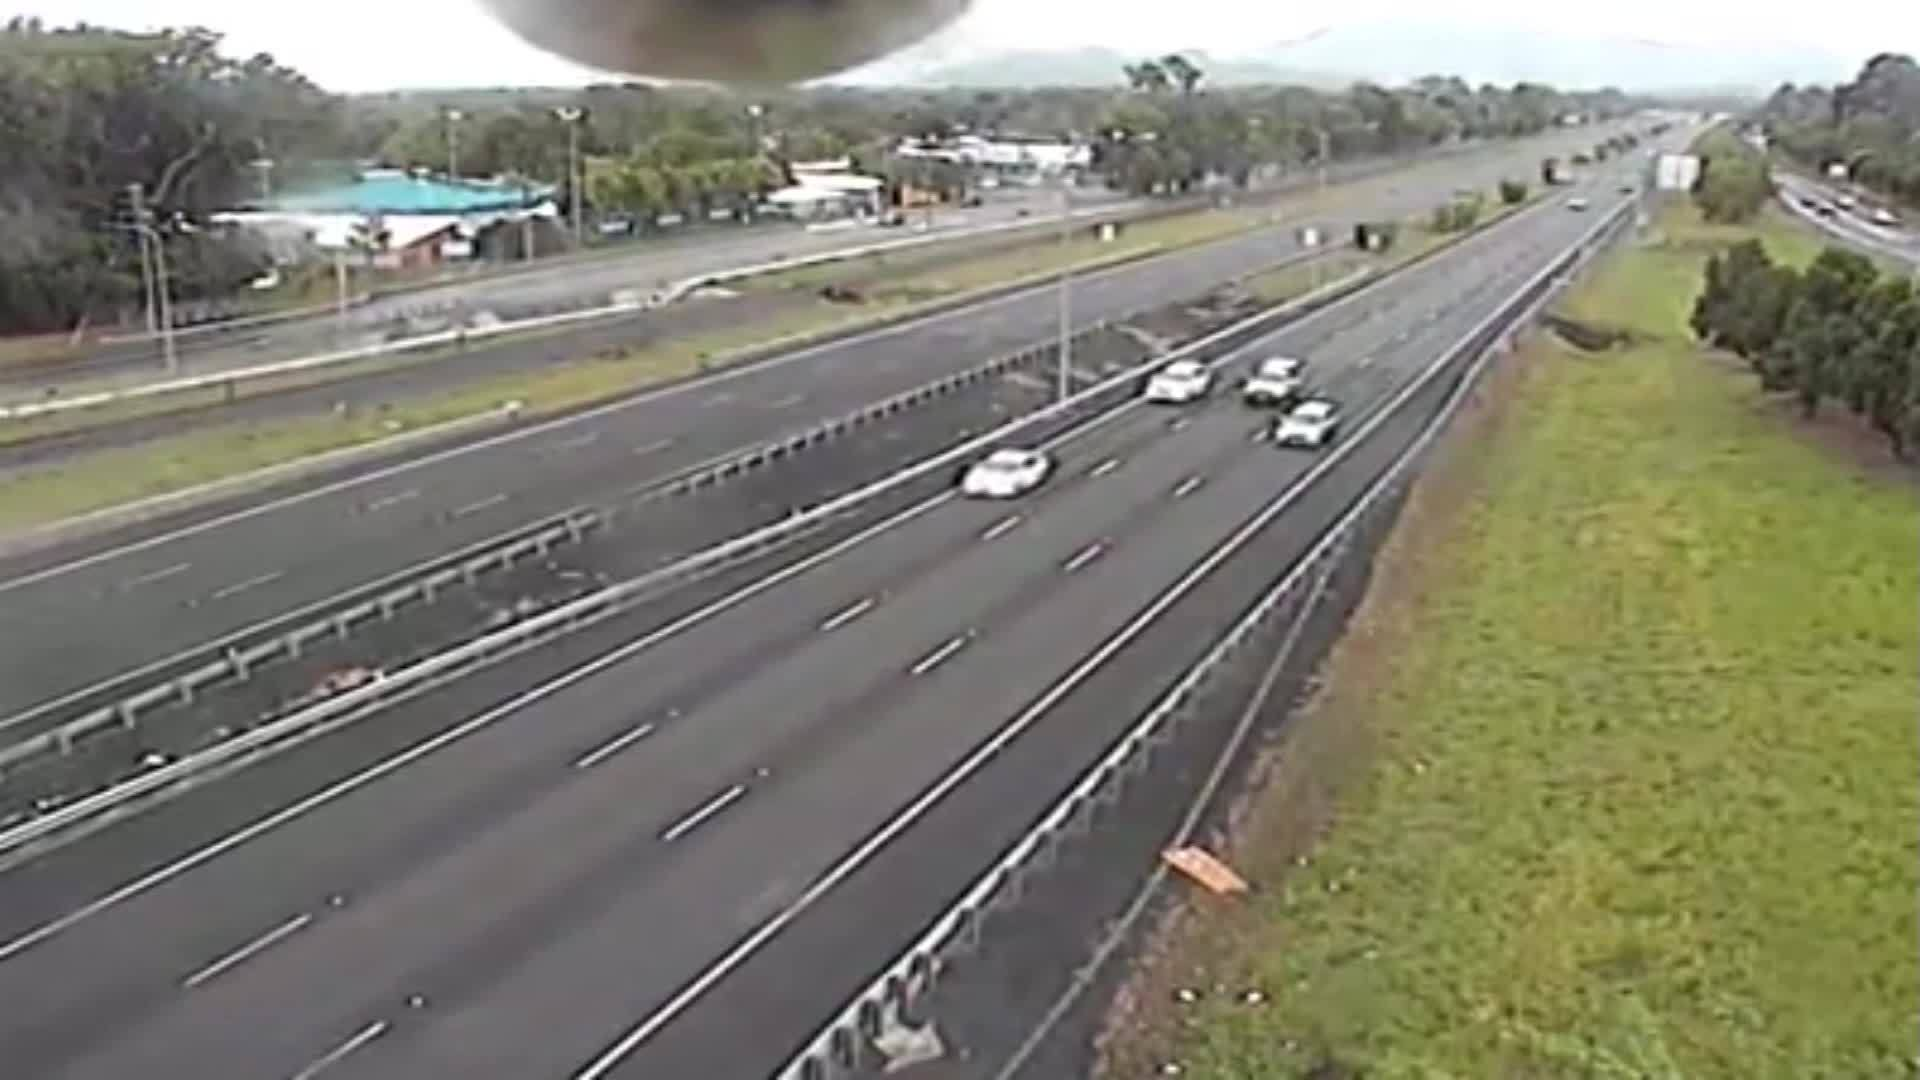 Cockatoo plays peek-a-boo with traffic cam